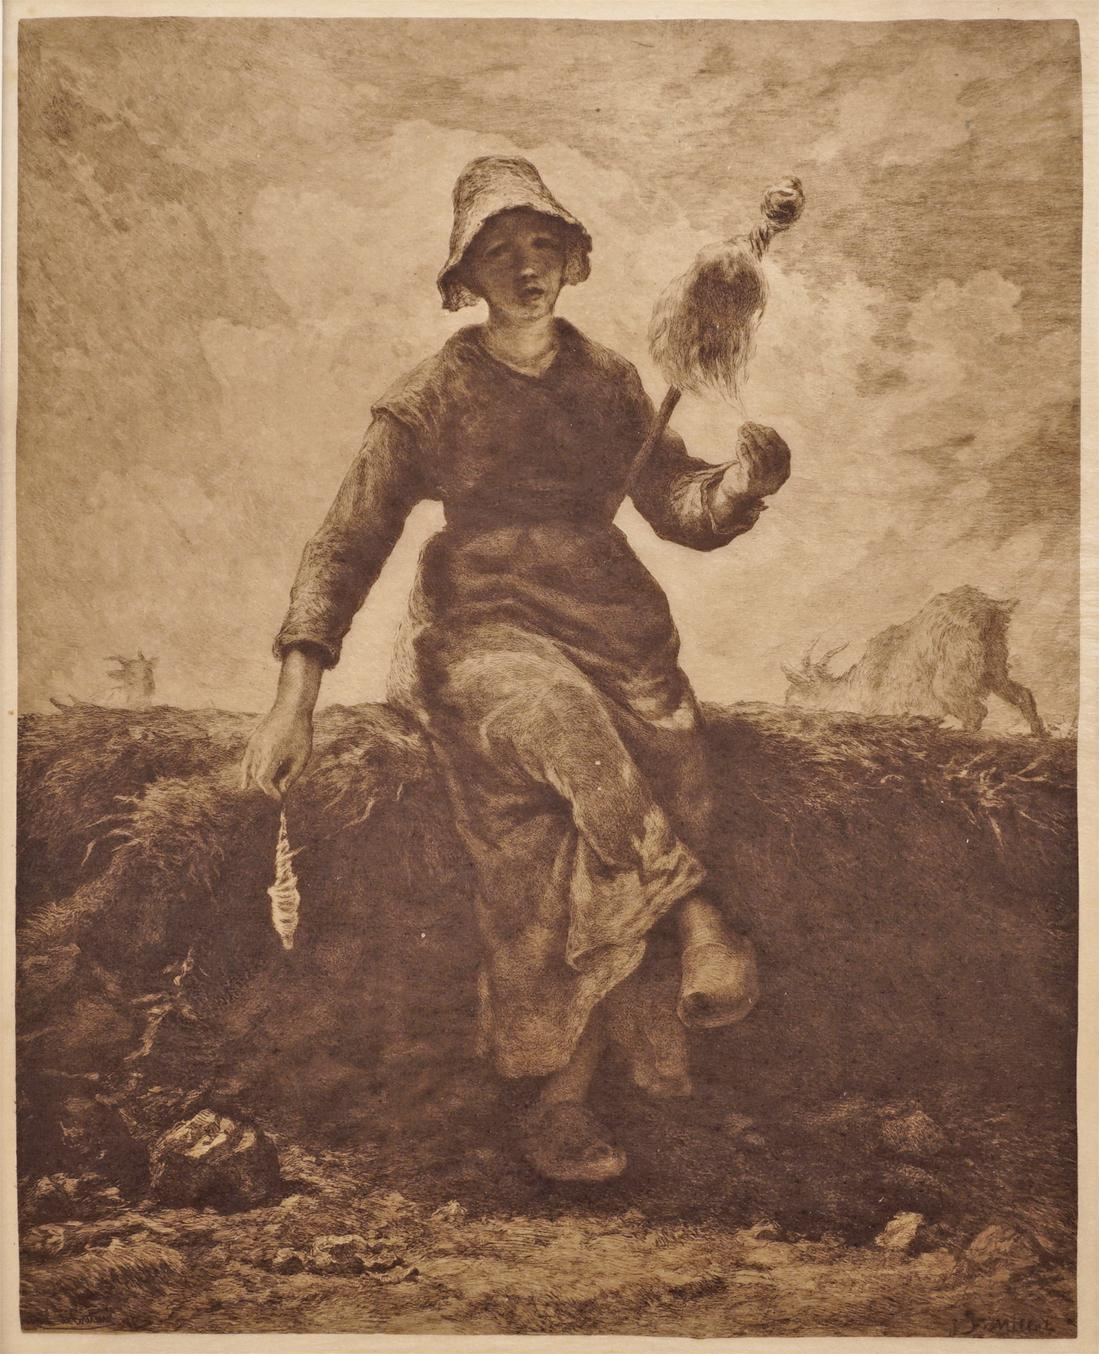 Sepia Print on India Paper The Spinner, Goat-Girl from the Auvergne after Jean Francois Millet - c. 19th Century, France